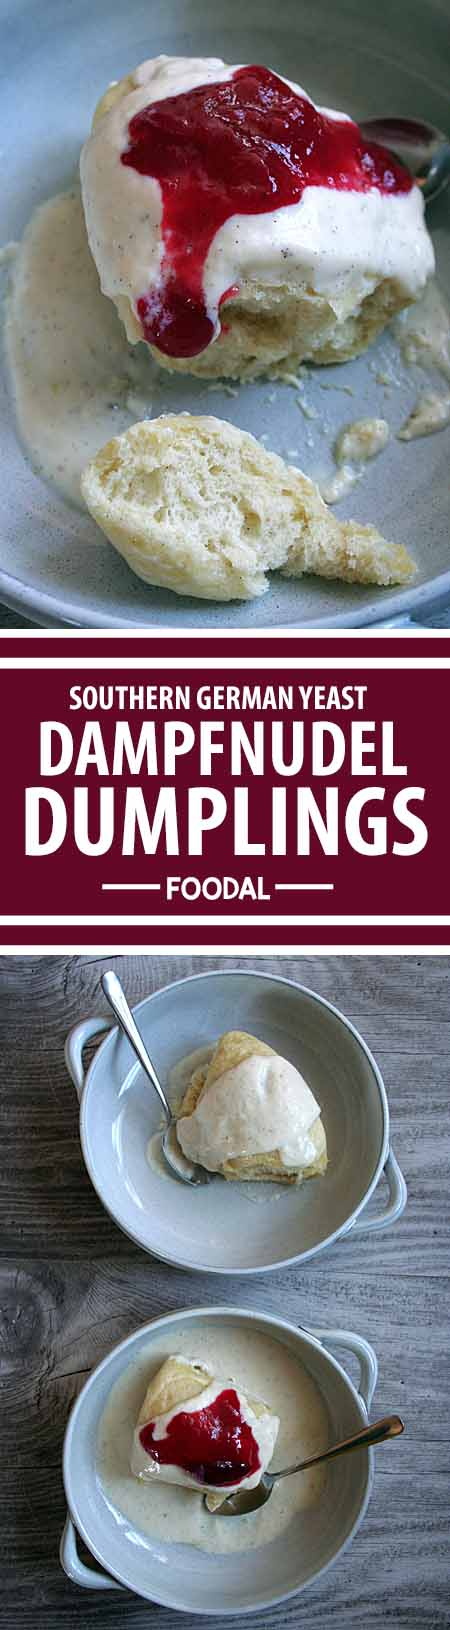 Want to try a different dumpling that's moist and chewy on the top, and nice and crunchy on the bottom? The ever-popular German Dampfnudel is not to be missed! Read more and get the recipe now on Foodal. https://foodal.com/recipes/comfort-food/southern-german-yeast-dumplings-a-soft-and-crispy-treat/